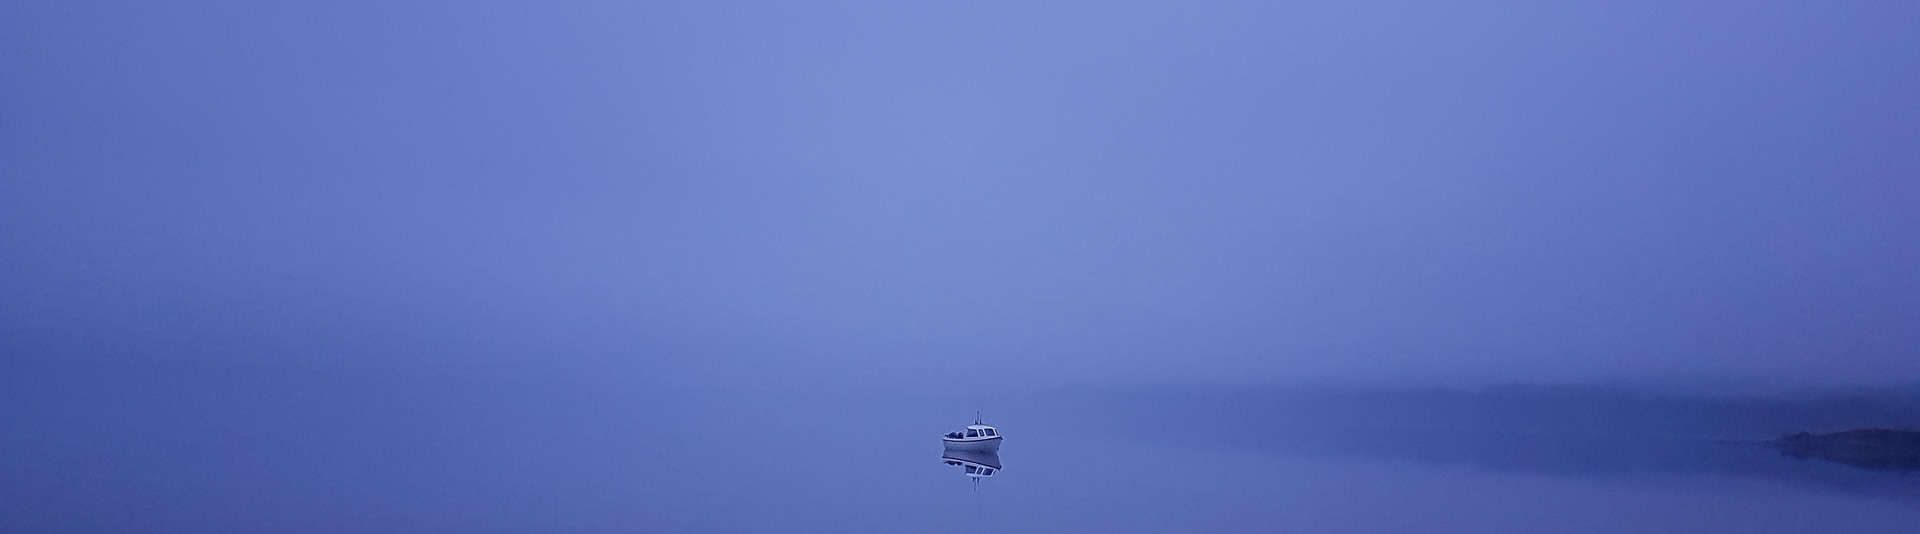 Very hard to tell the difference between sea and sky on this misty morning on Loch Etive - our little boat appears suspended rather than afloat